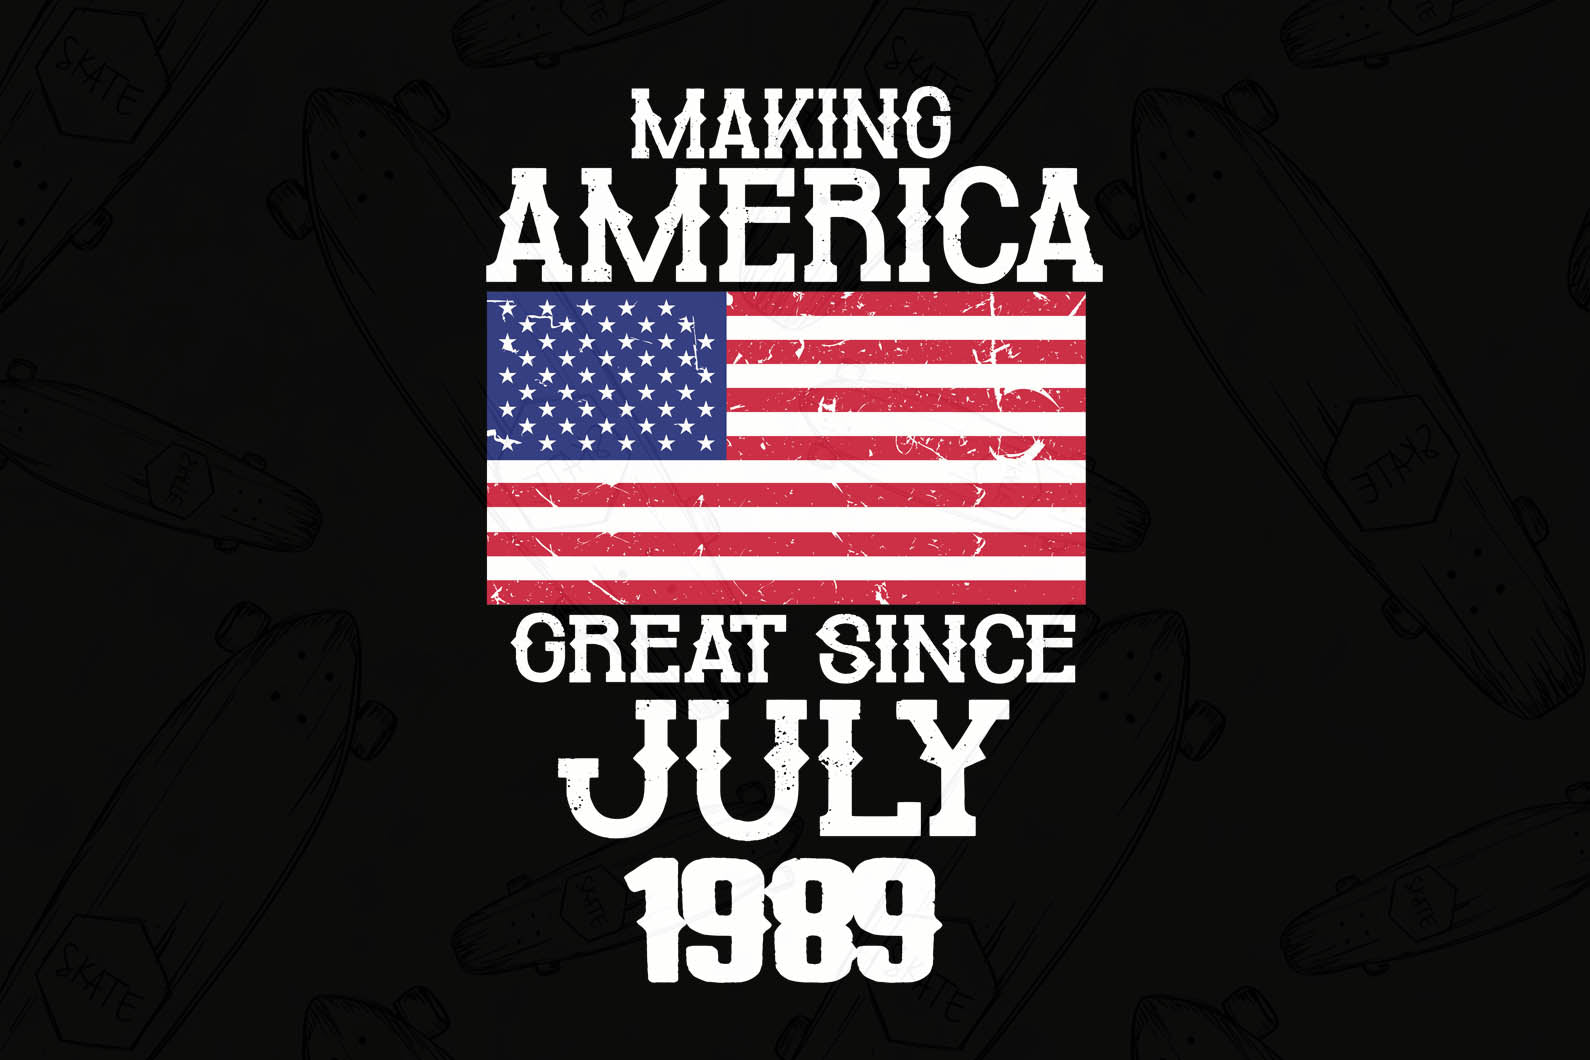 Making america great since July 1989 svg,America flag,birthday shirt,born in 1989,30th birthday gift, birthday anniversary, birthday countdown,30 year old,girl and boy svg,birthday party,birthday gift,birthday gift idea,digital file, vinyl for cricut